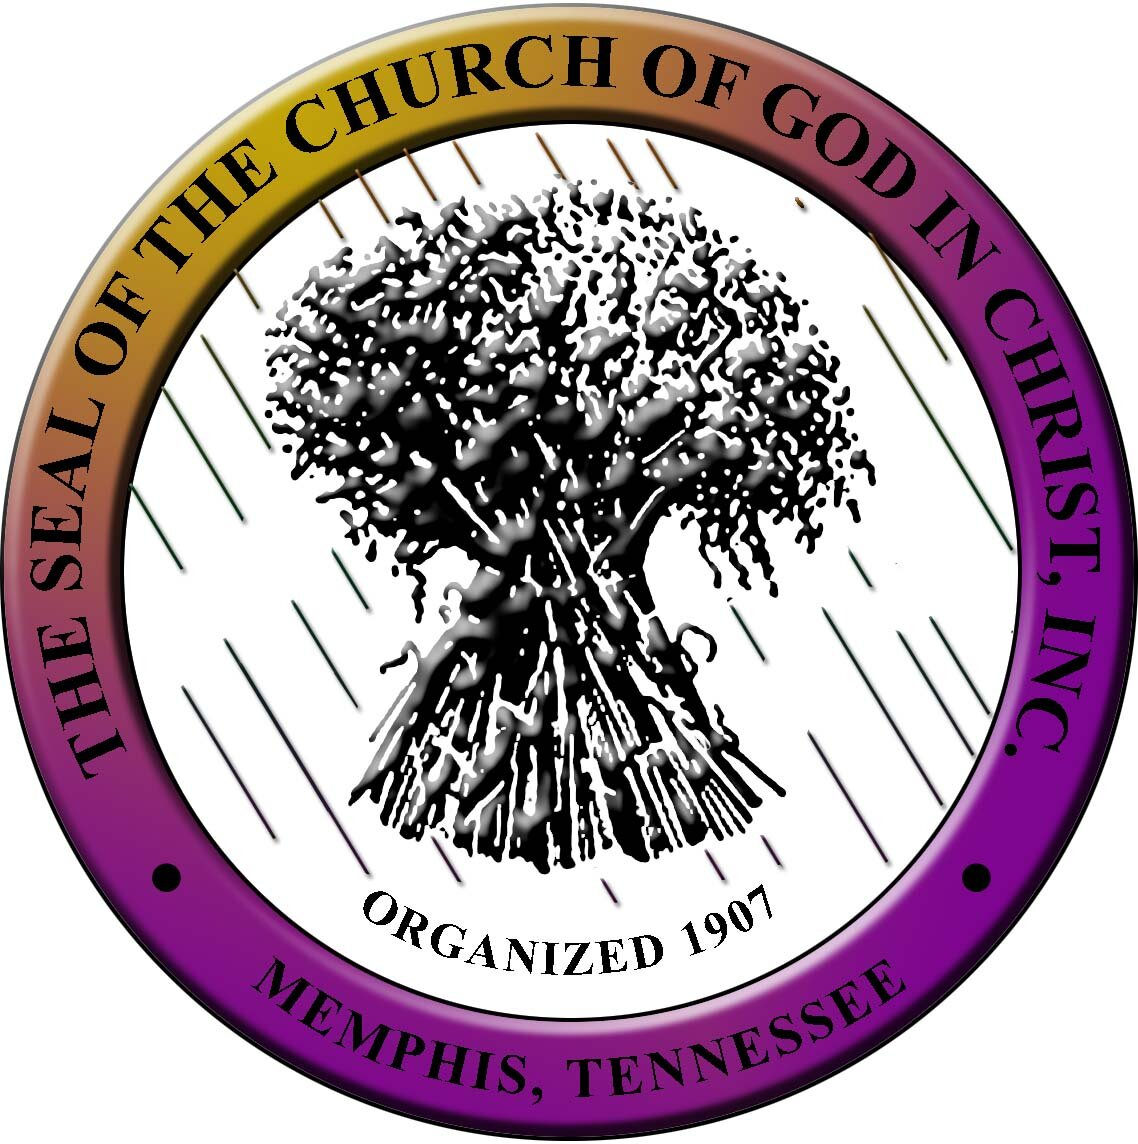 Hope Temple COGIC (@HopeTempleCOGIC).